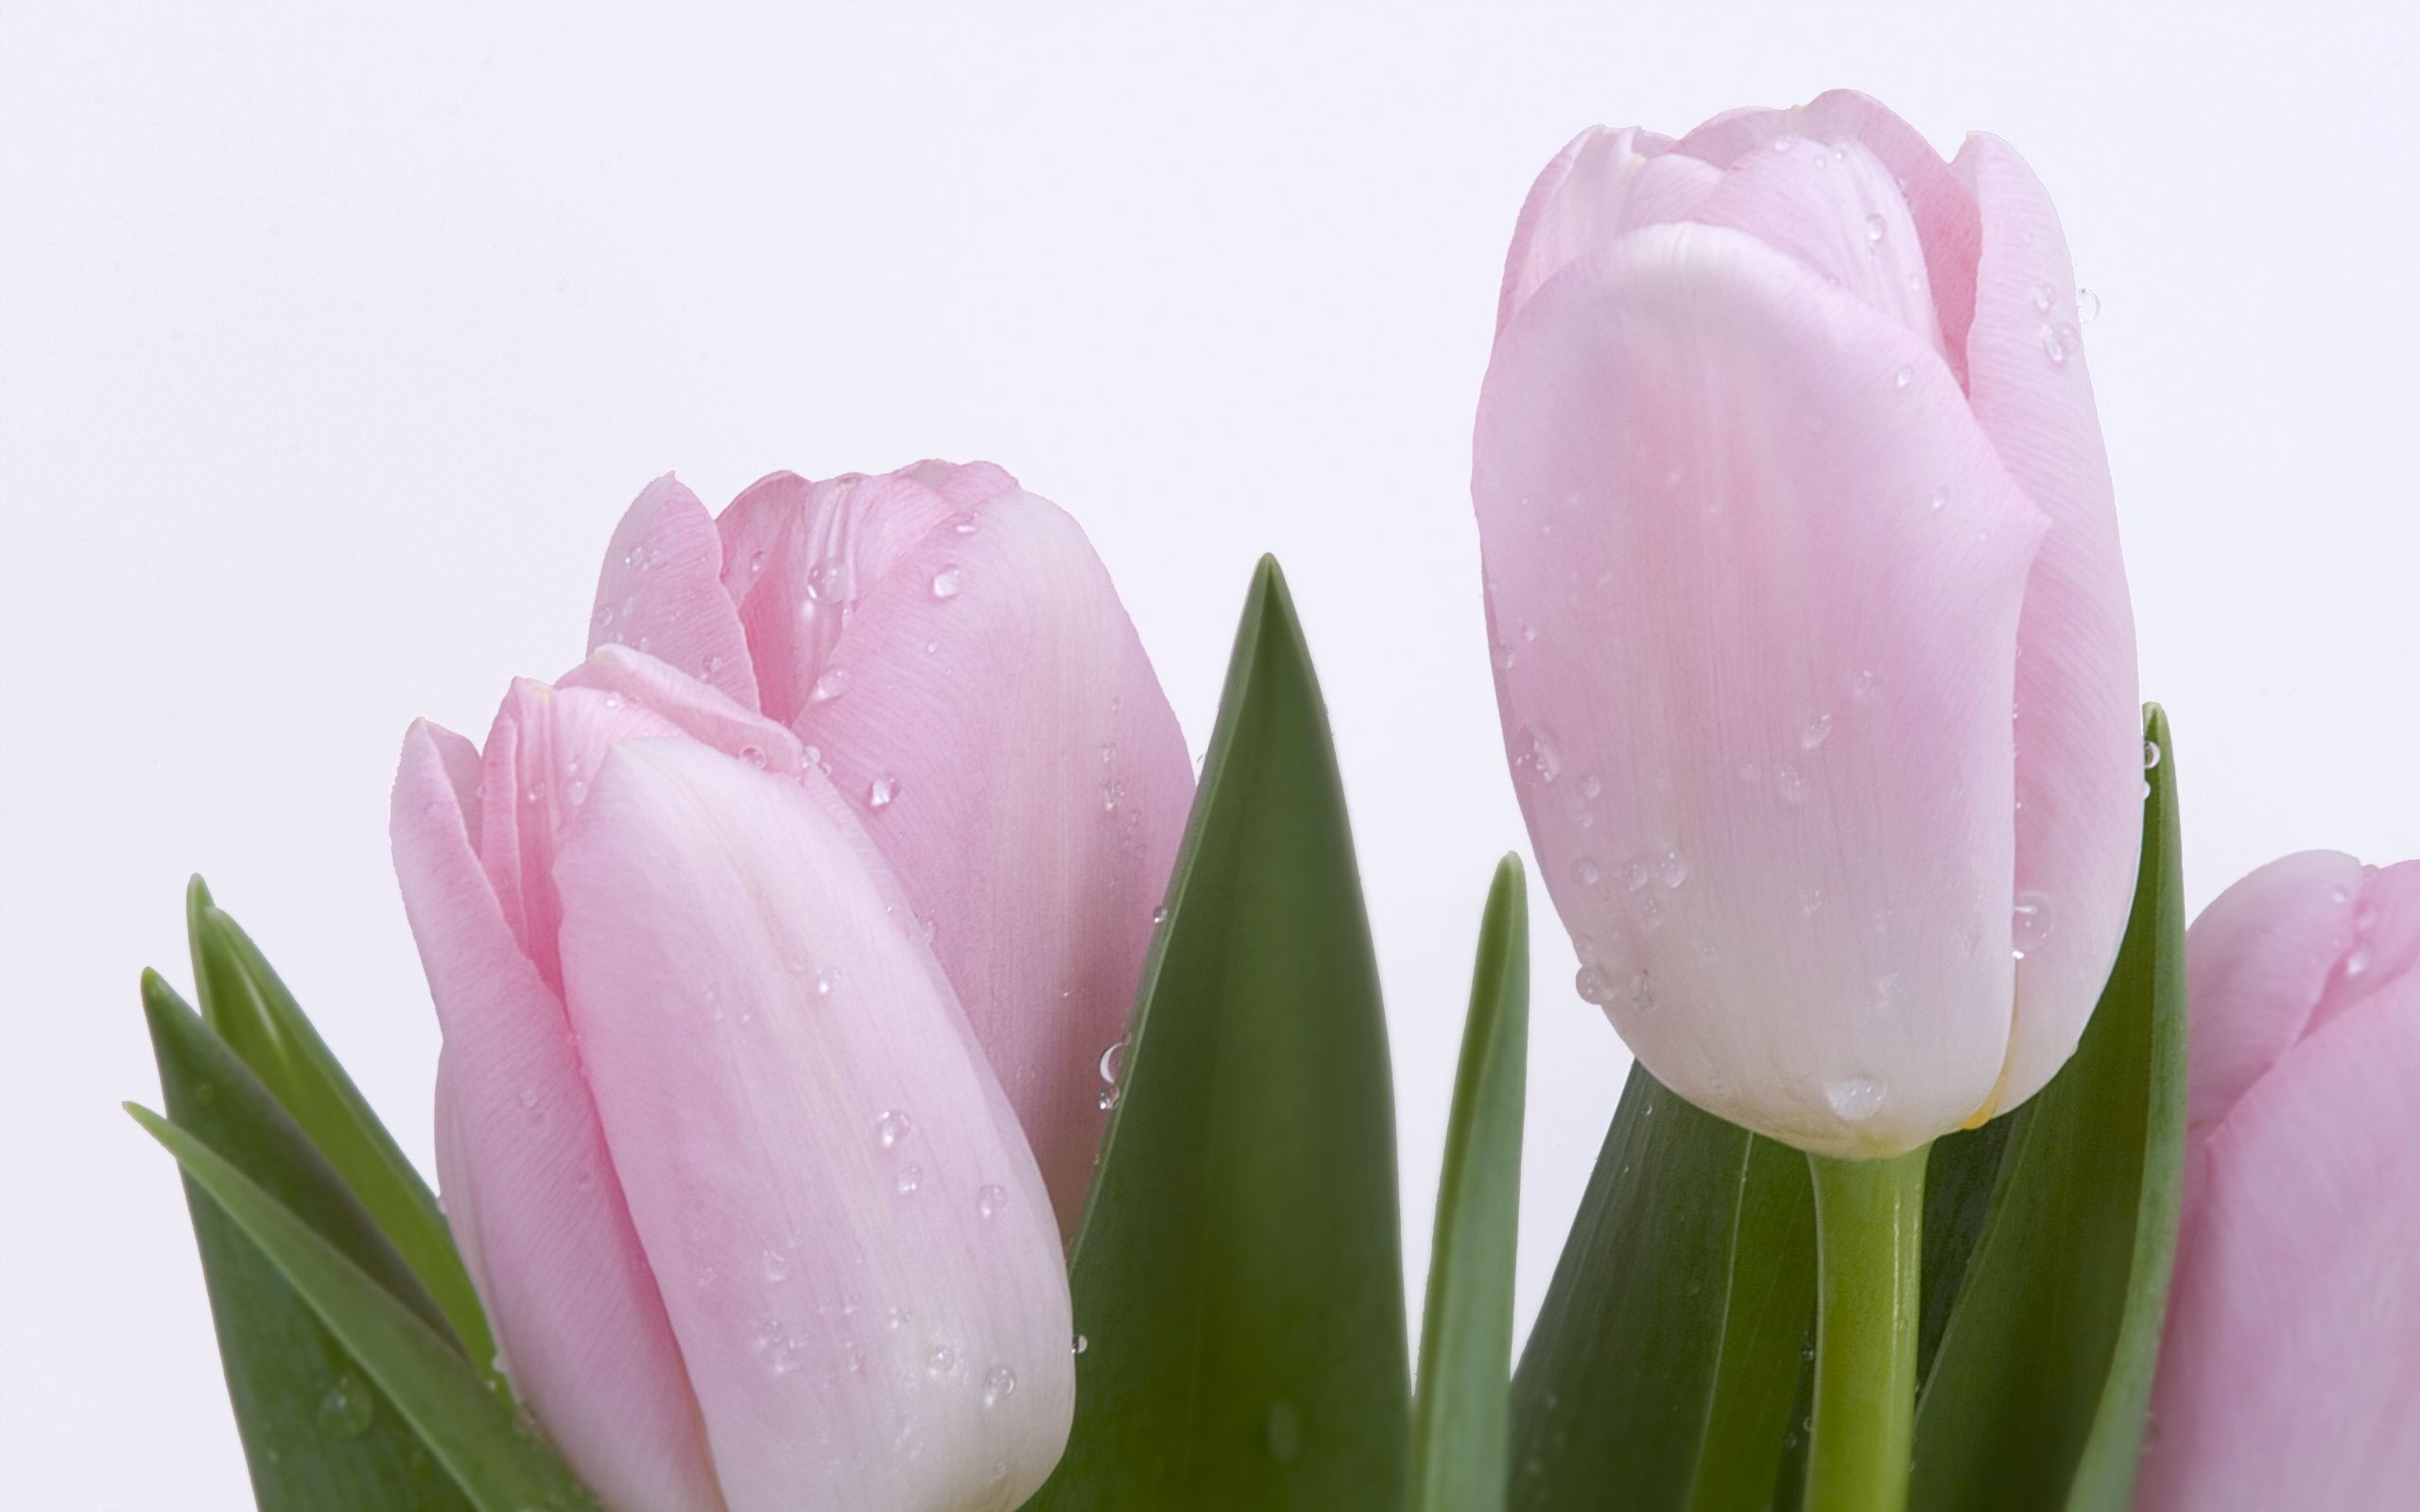 2560x1600 Pink Fresh Tulips Wallpaper Flowers Nature Wallpapers